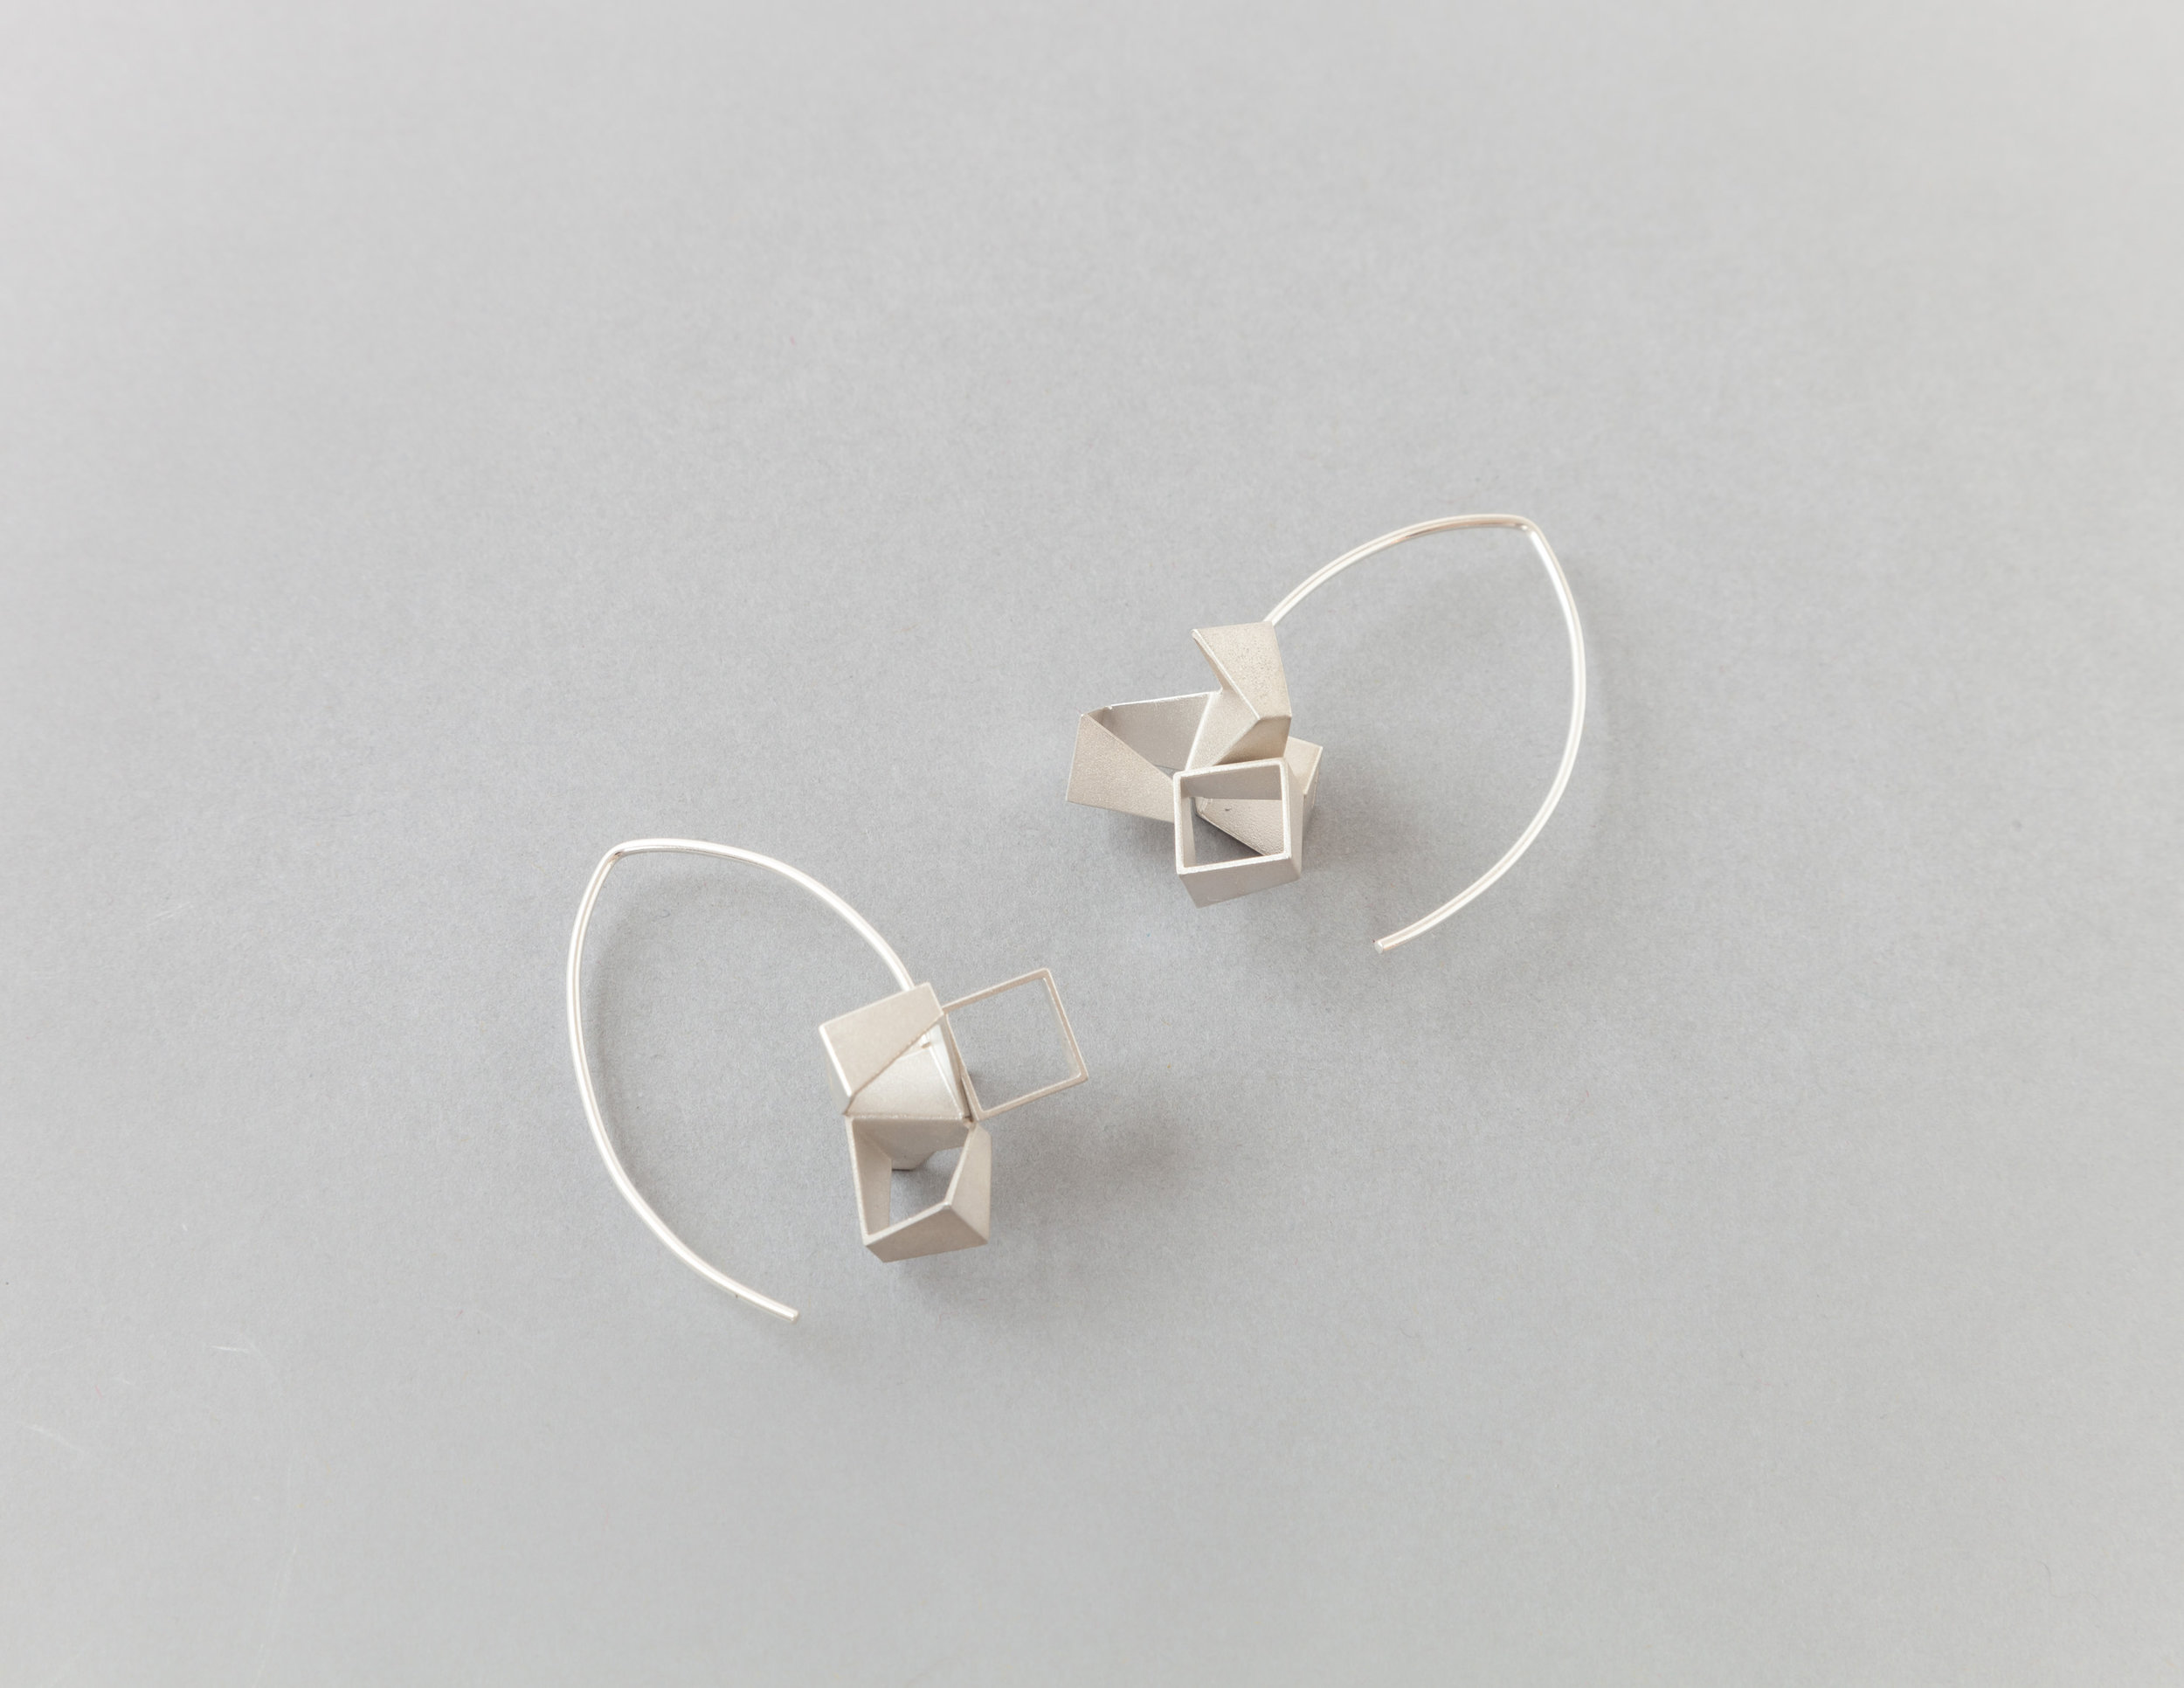 Alma Sophia Design-8x8 cluster earrings.jpg